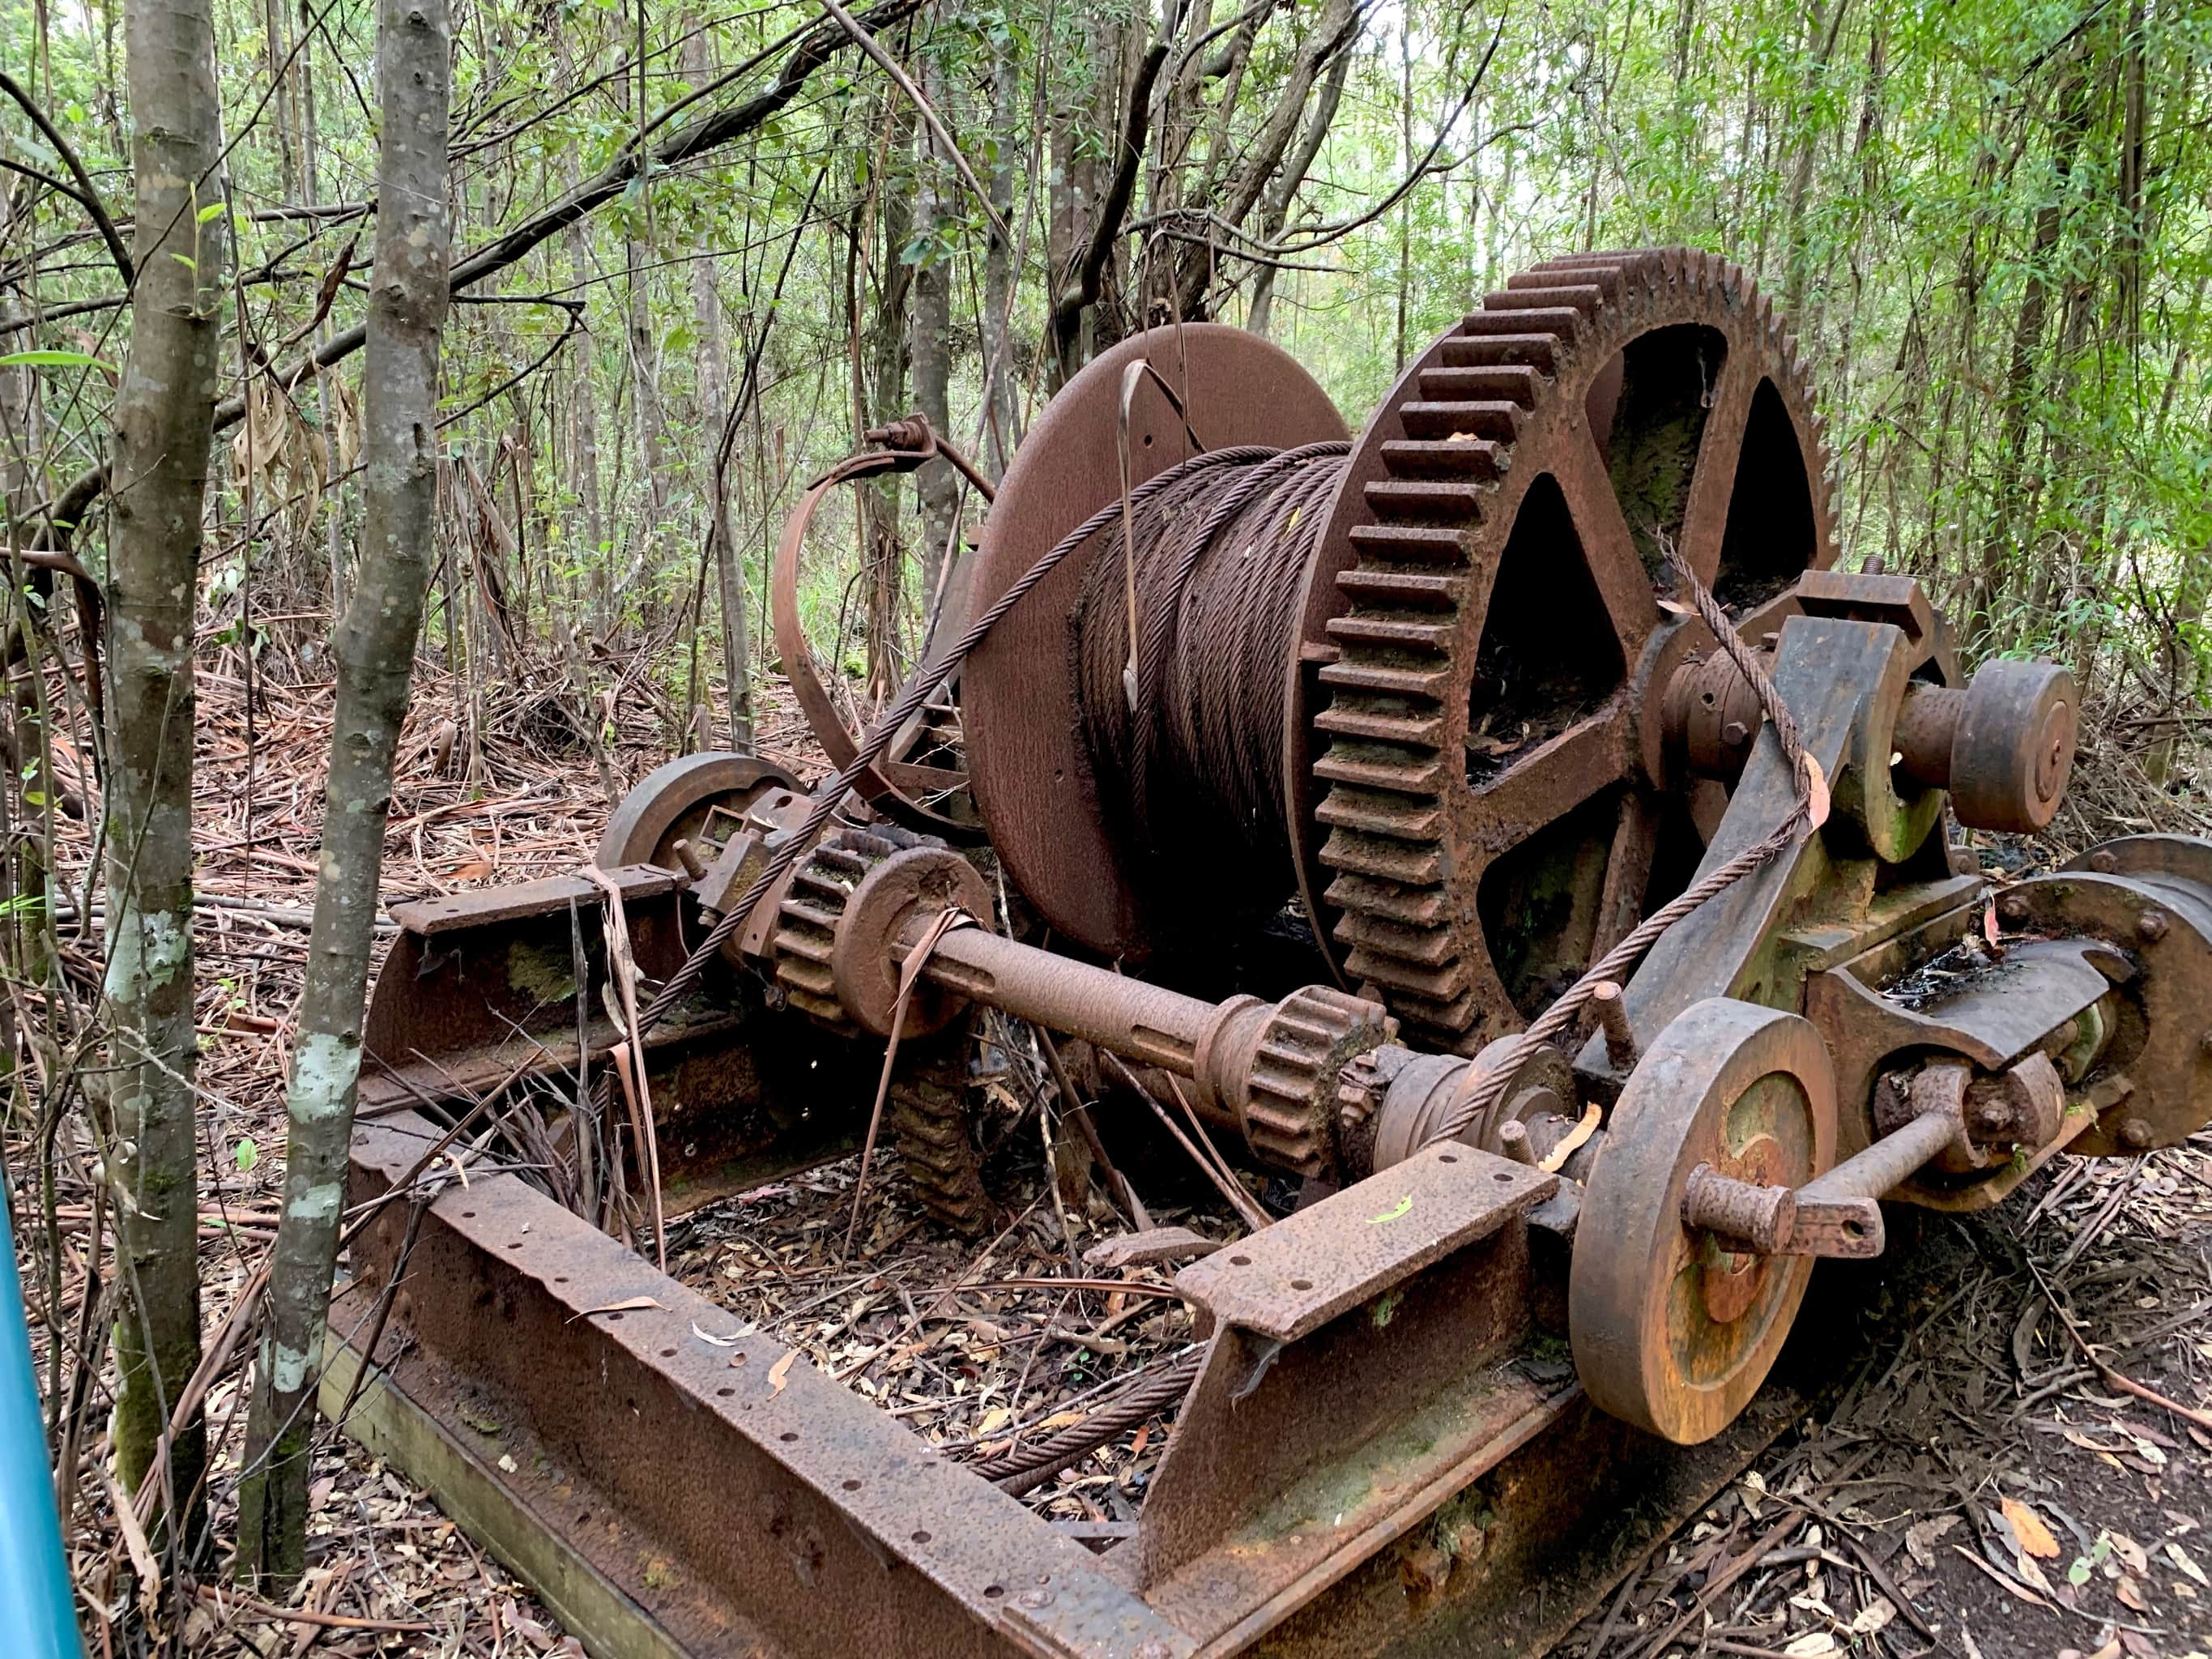 Old piece of milling equipment from Clennetts mill site.